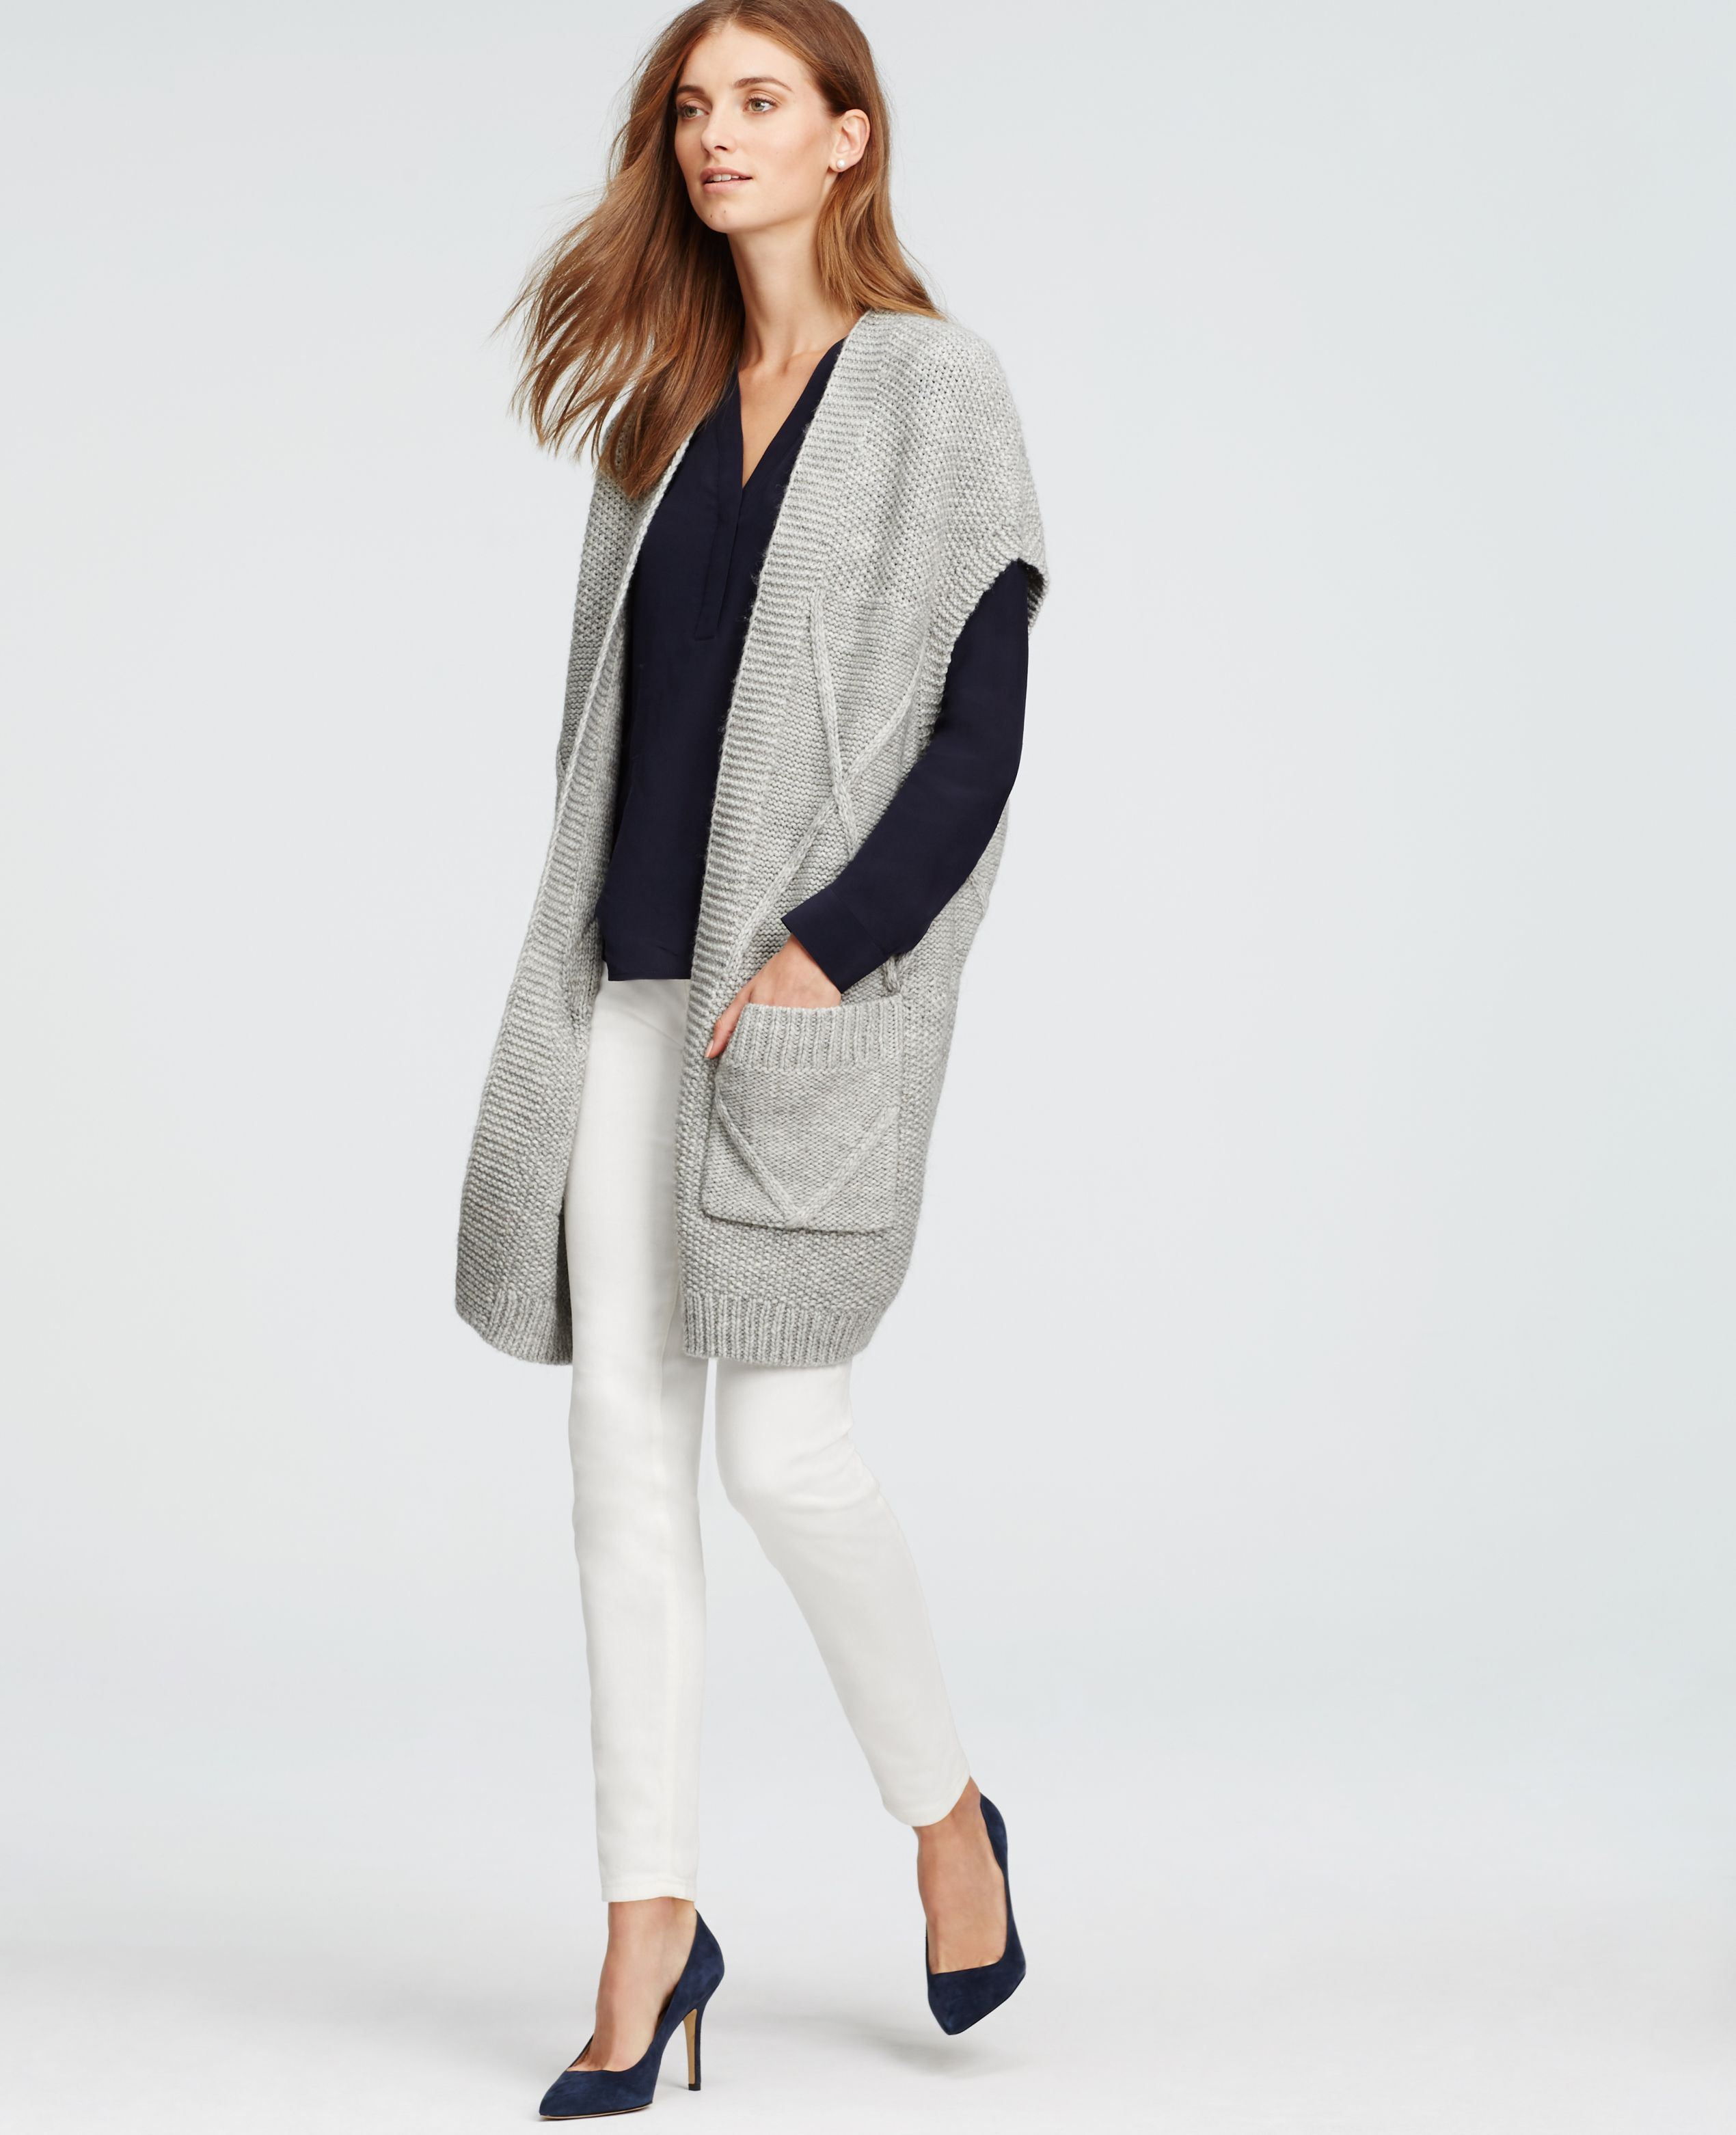 How to long wear cardigans sweaters